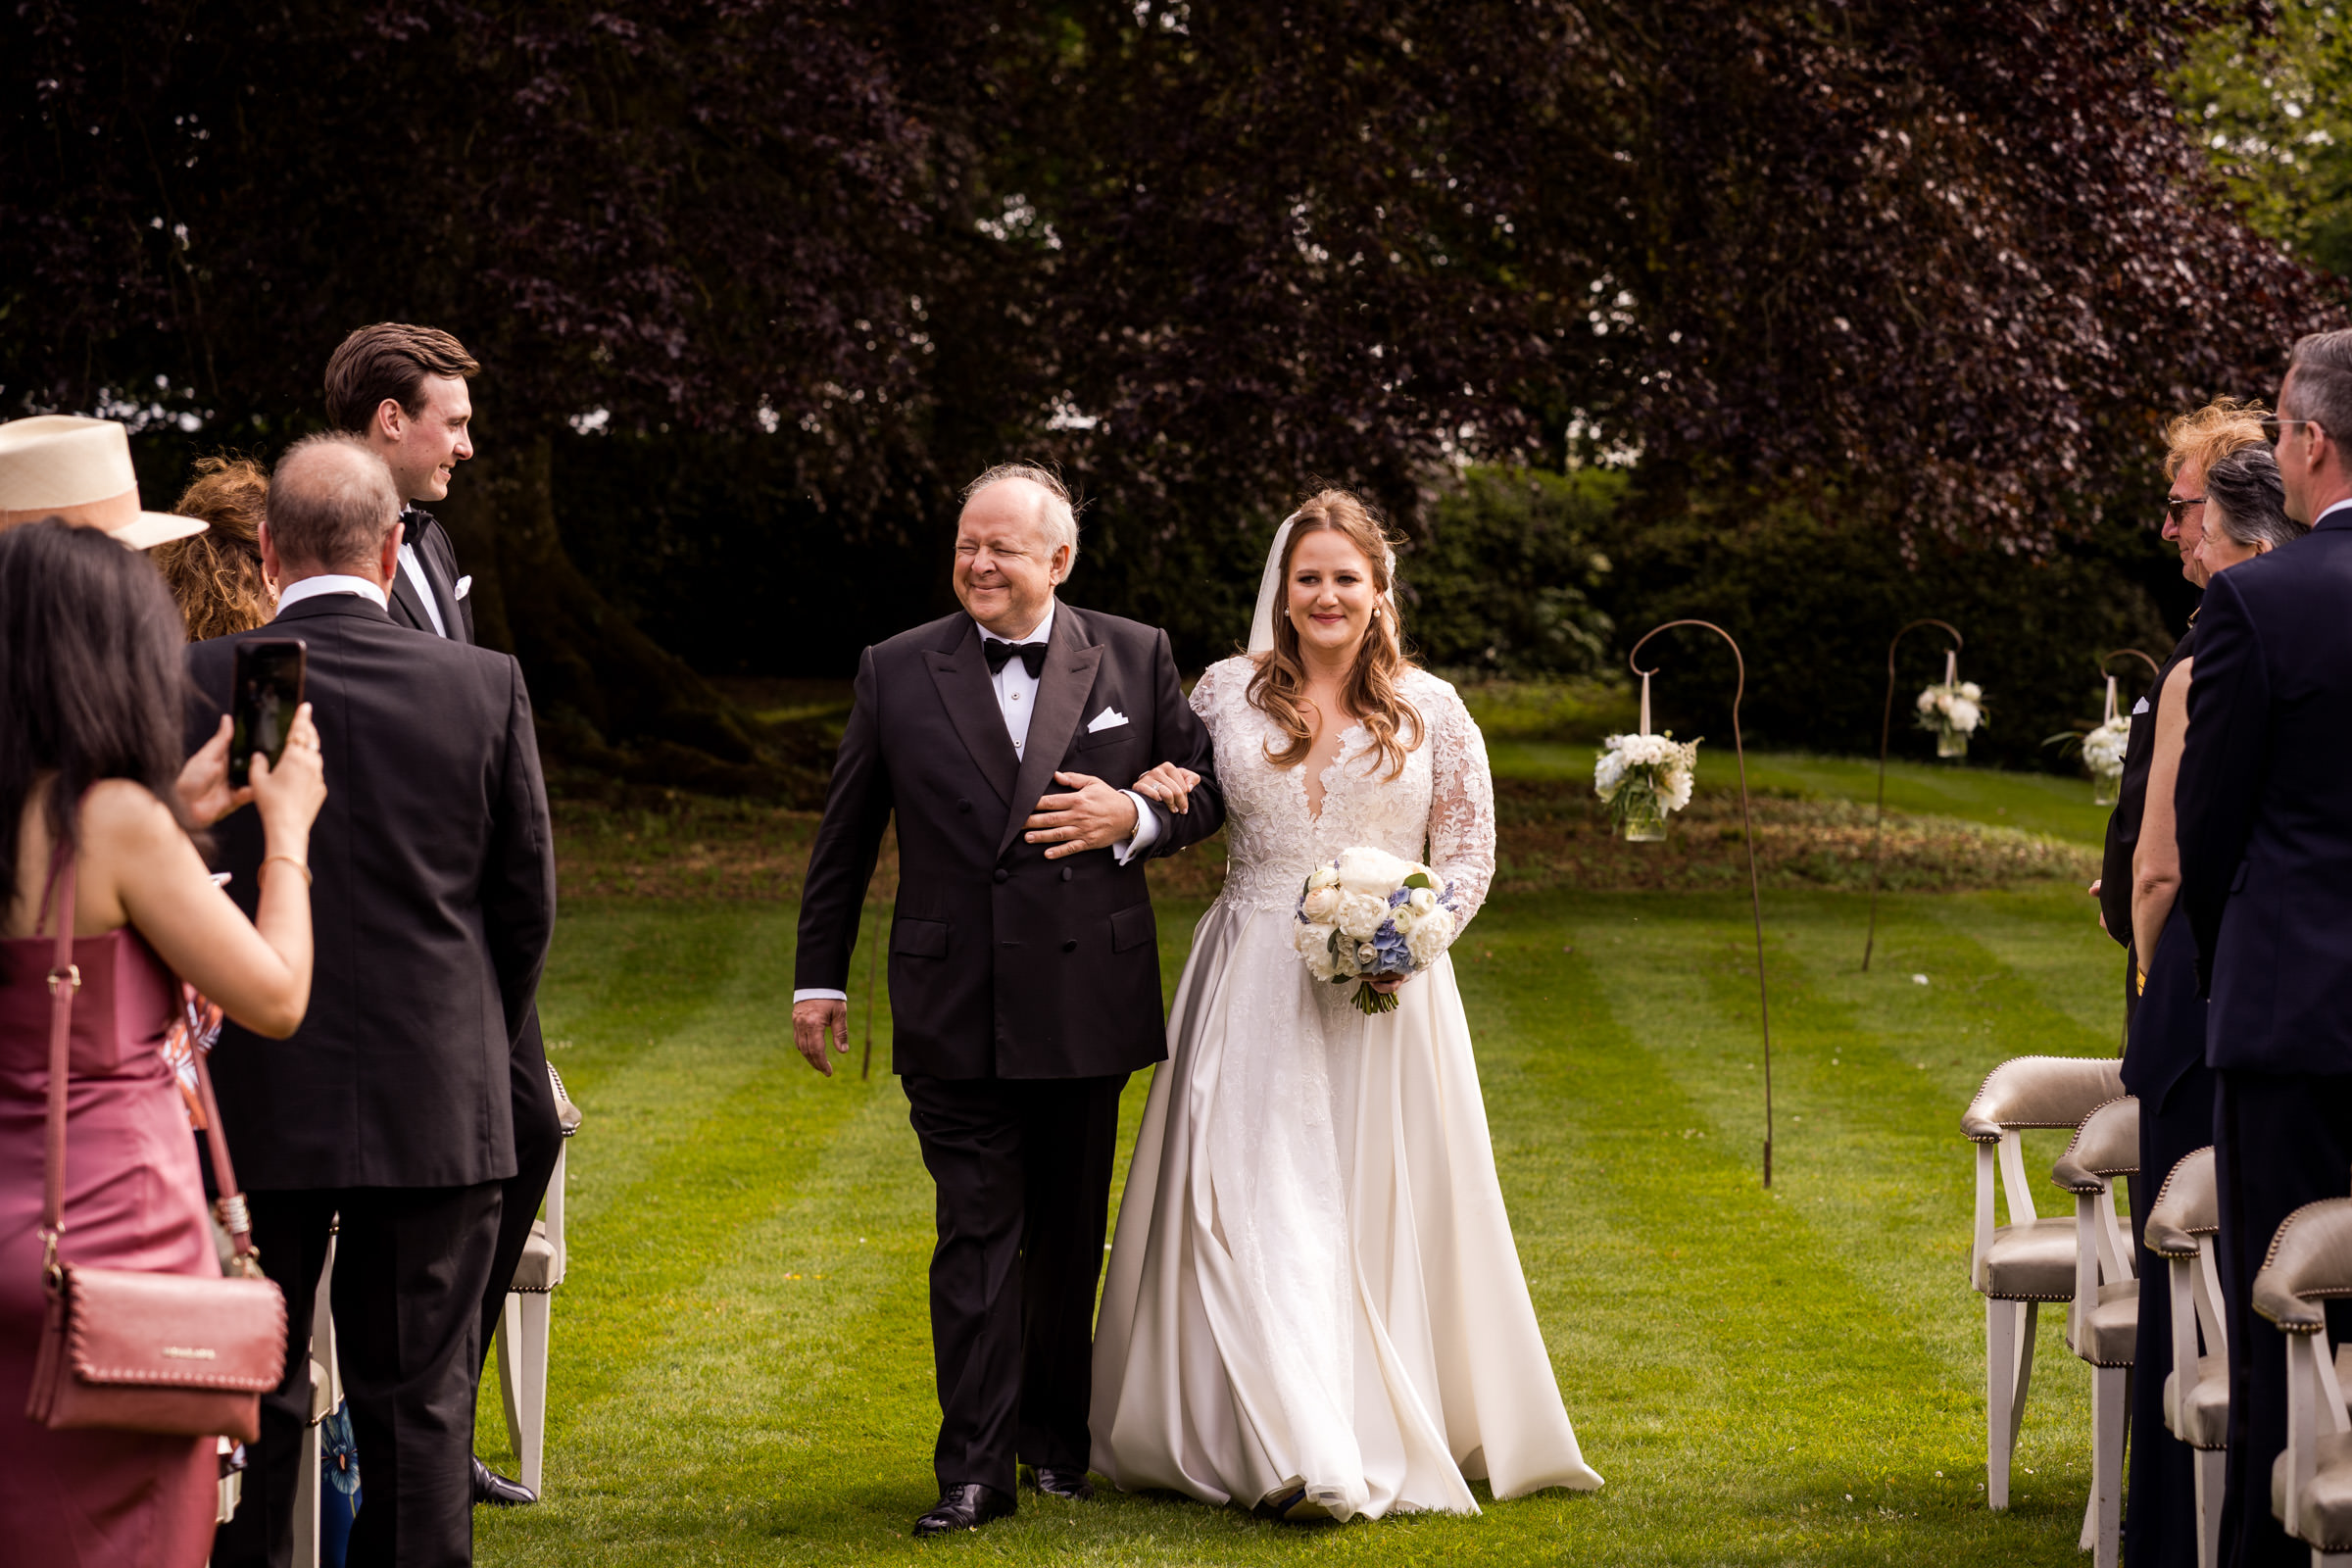 Babington House Outdoor Civil Ceremony and Wedding Day 014.jpg